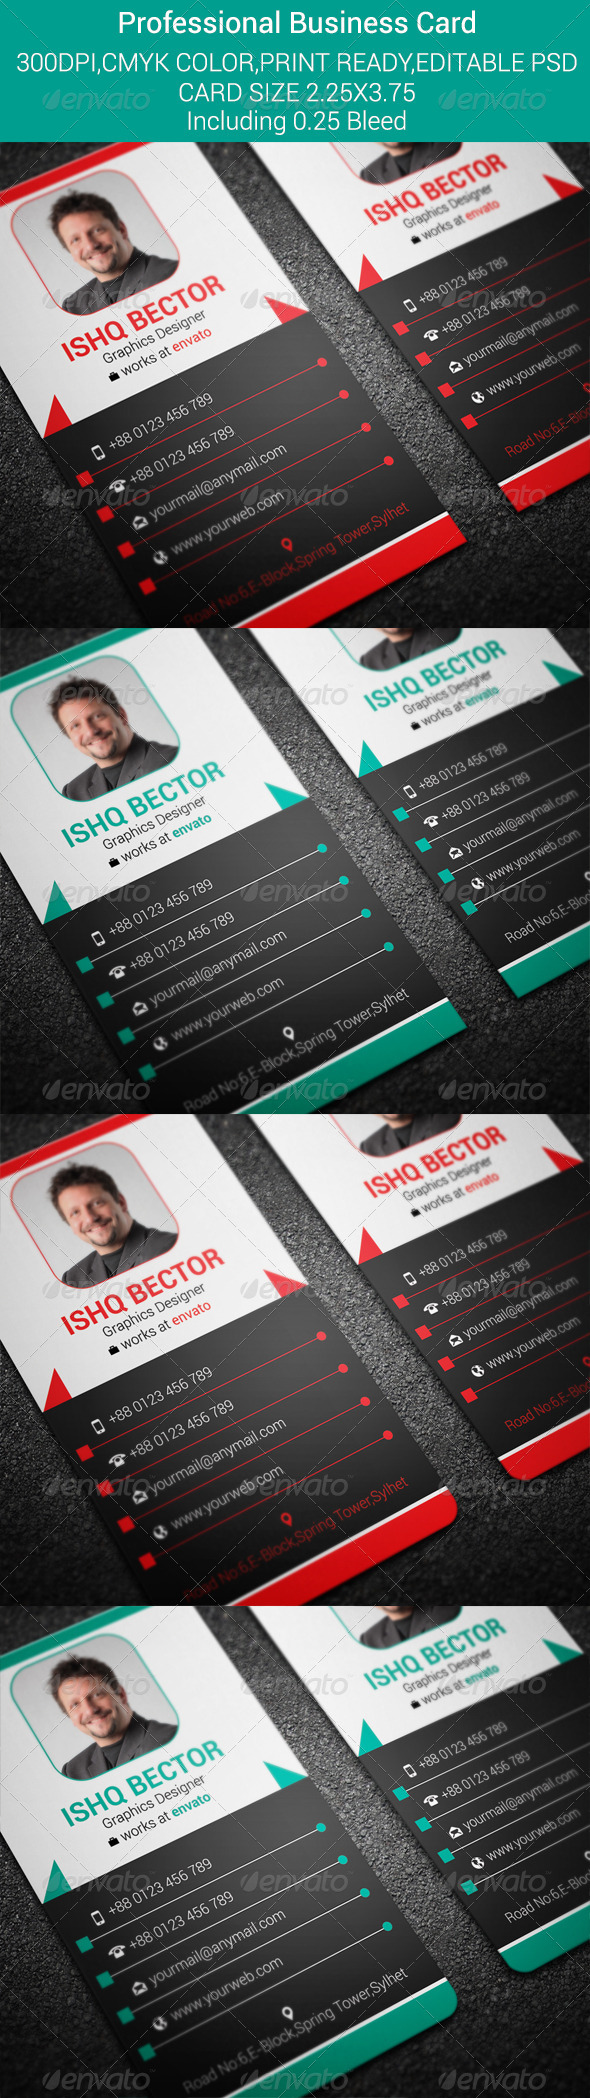 Vertical Professional Business Card-2 | Business cards, Font logo ...